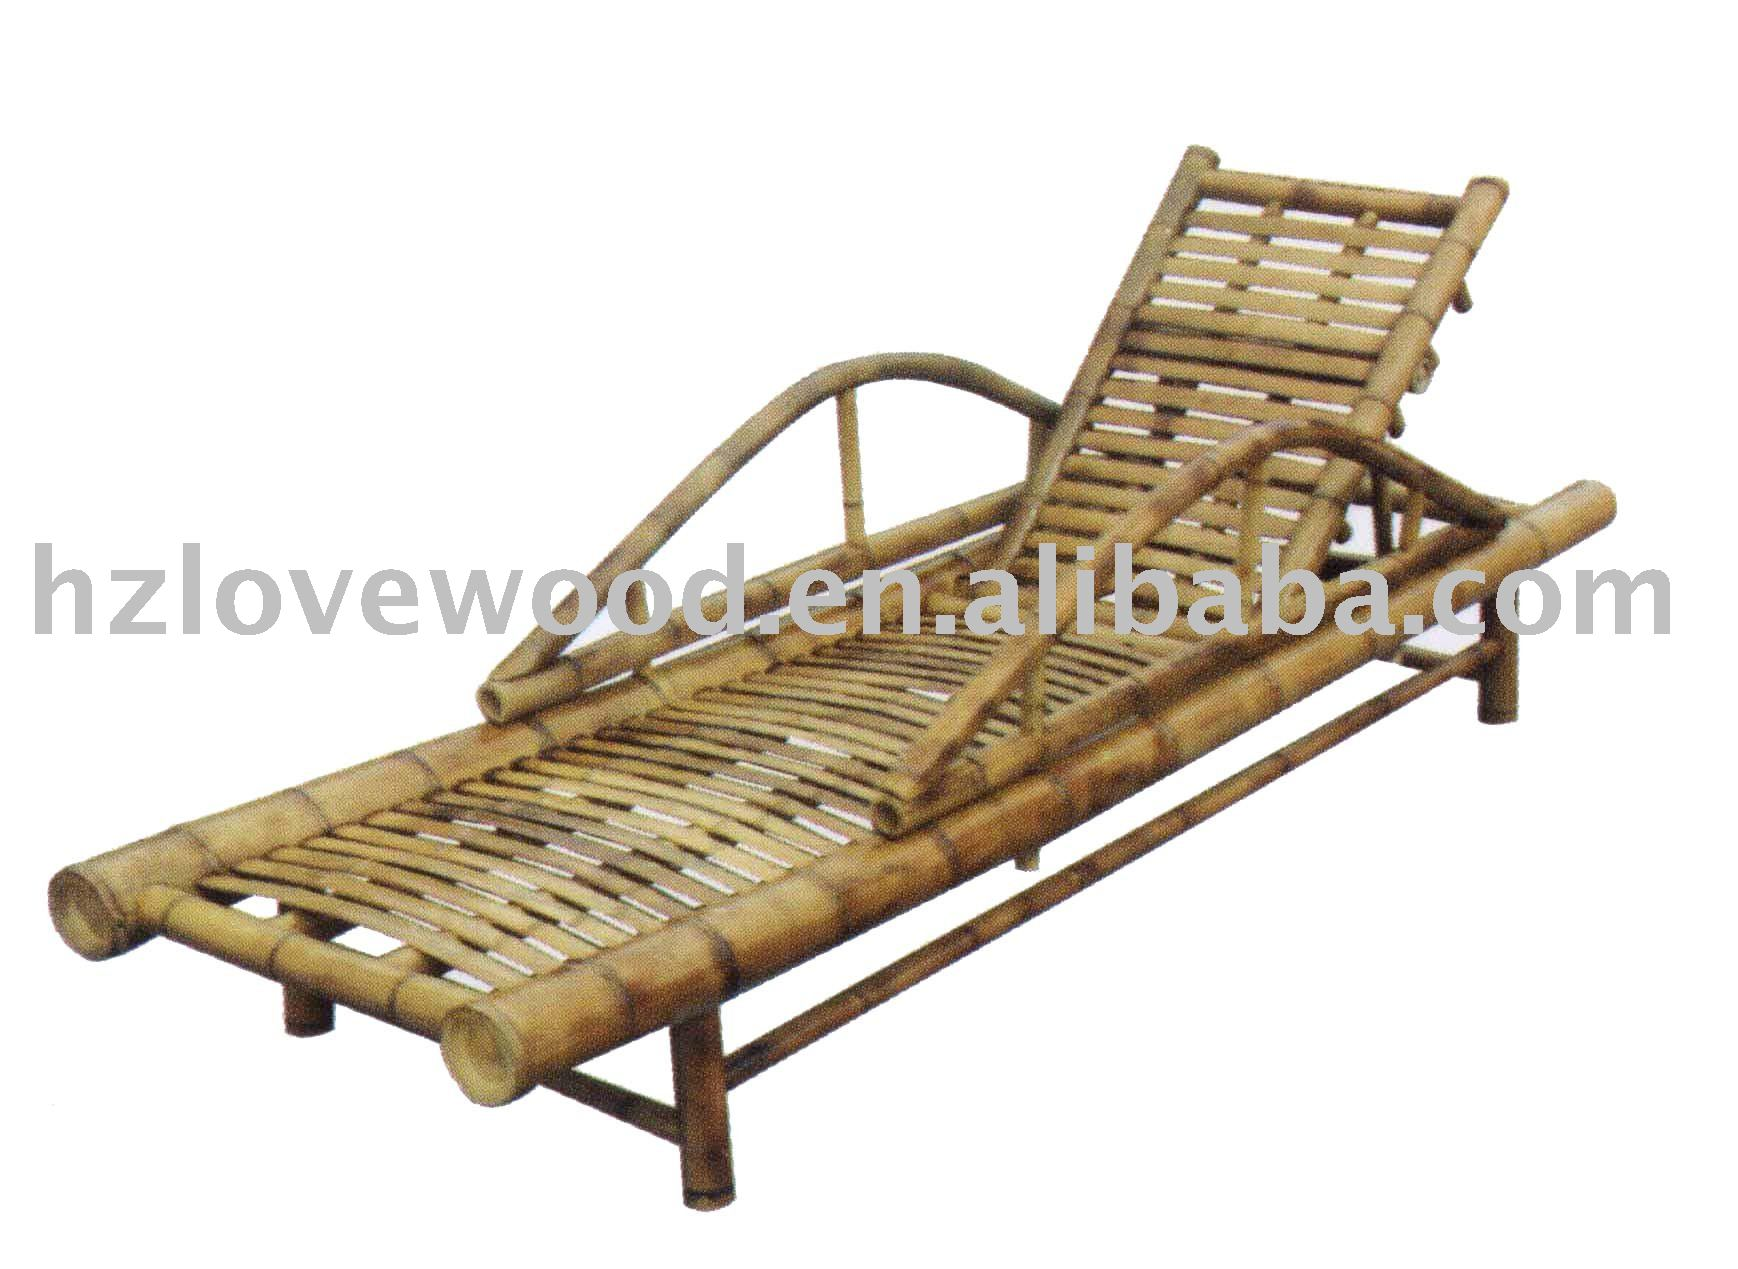 Wooden beach lounge chair - Bamboo Sun Lounger Bamboo Sun Lounger Suppliers And Manufacturers At Alibaba Com